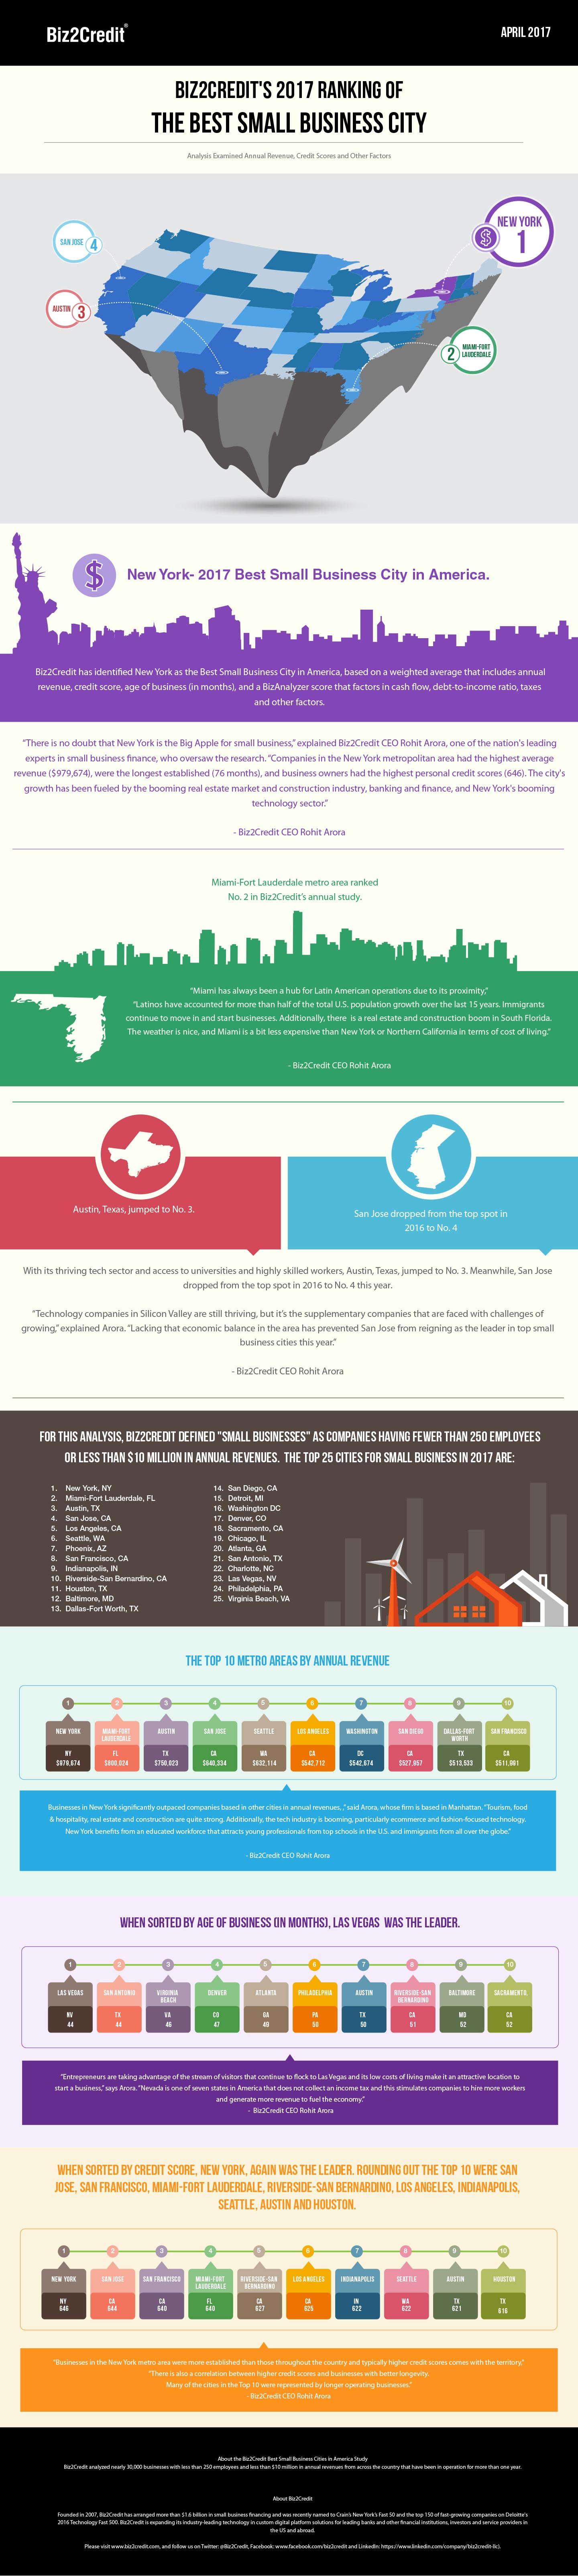 Infographic - Best Small Business Cities in America 2017